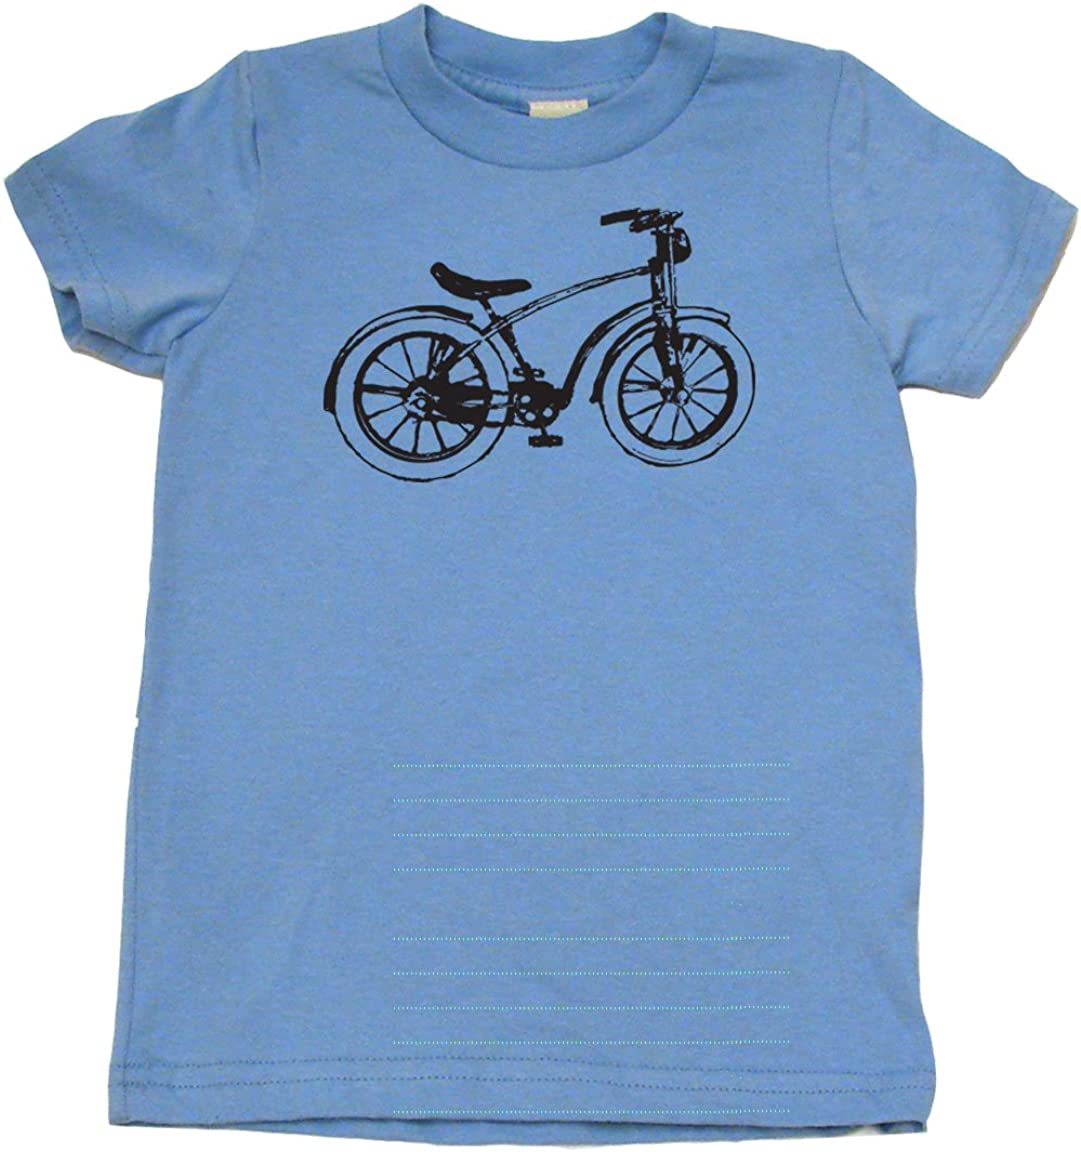 Adorable Baby Gift Vintage Bicycle Retro Toddler Clothes Boy Or Girl T-Shirts